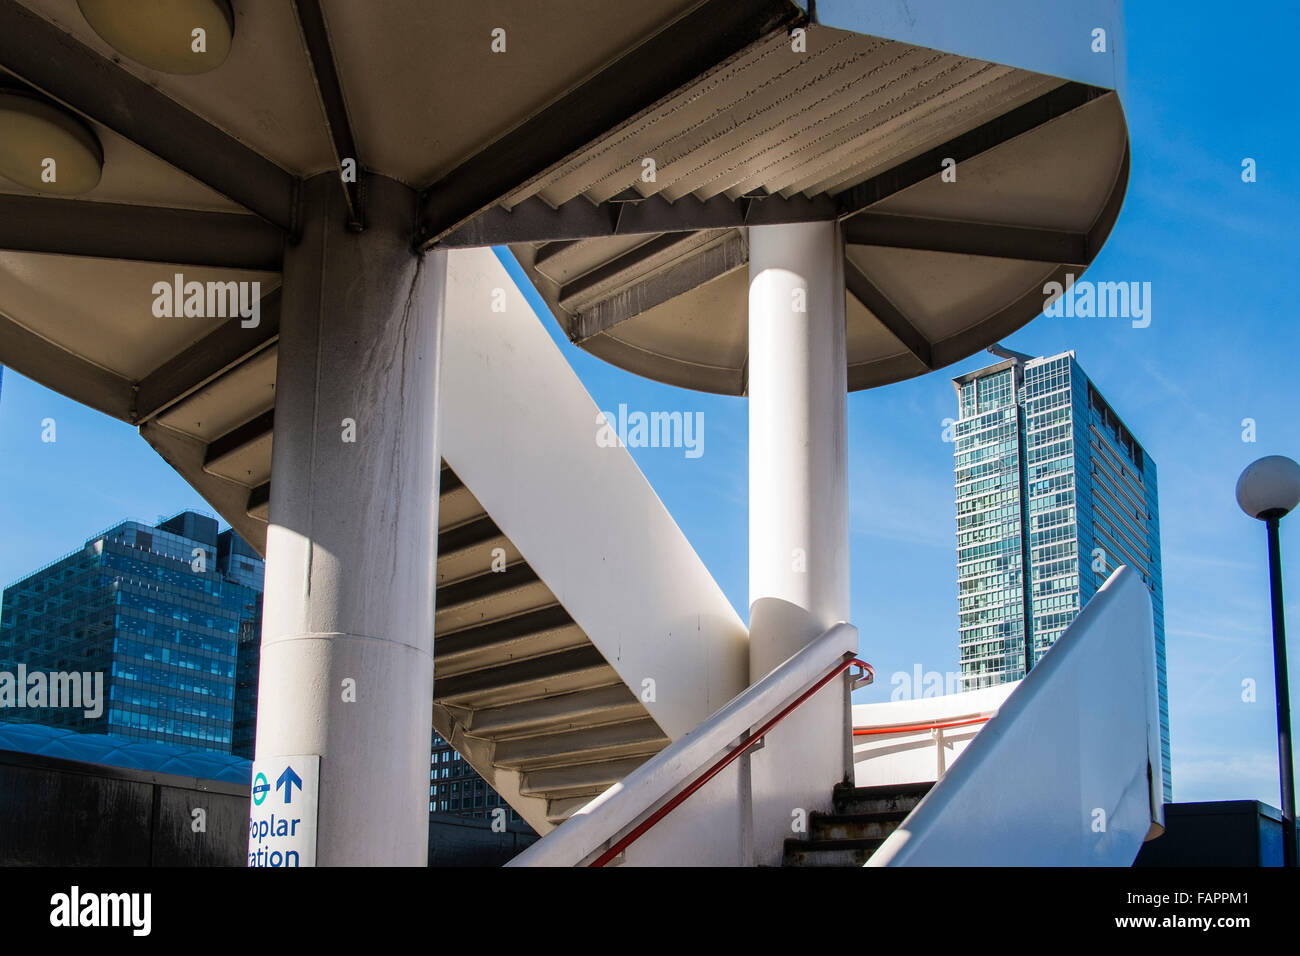 Poplar station stairway structure, Canary Wharf, London, England, U.K. - Stock Image